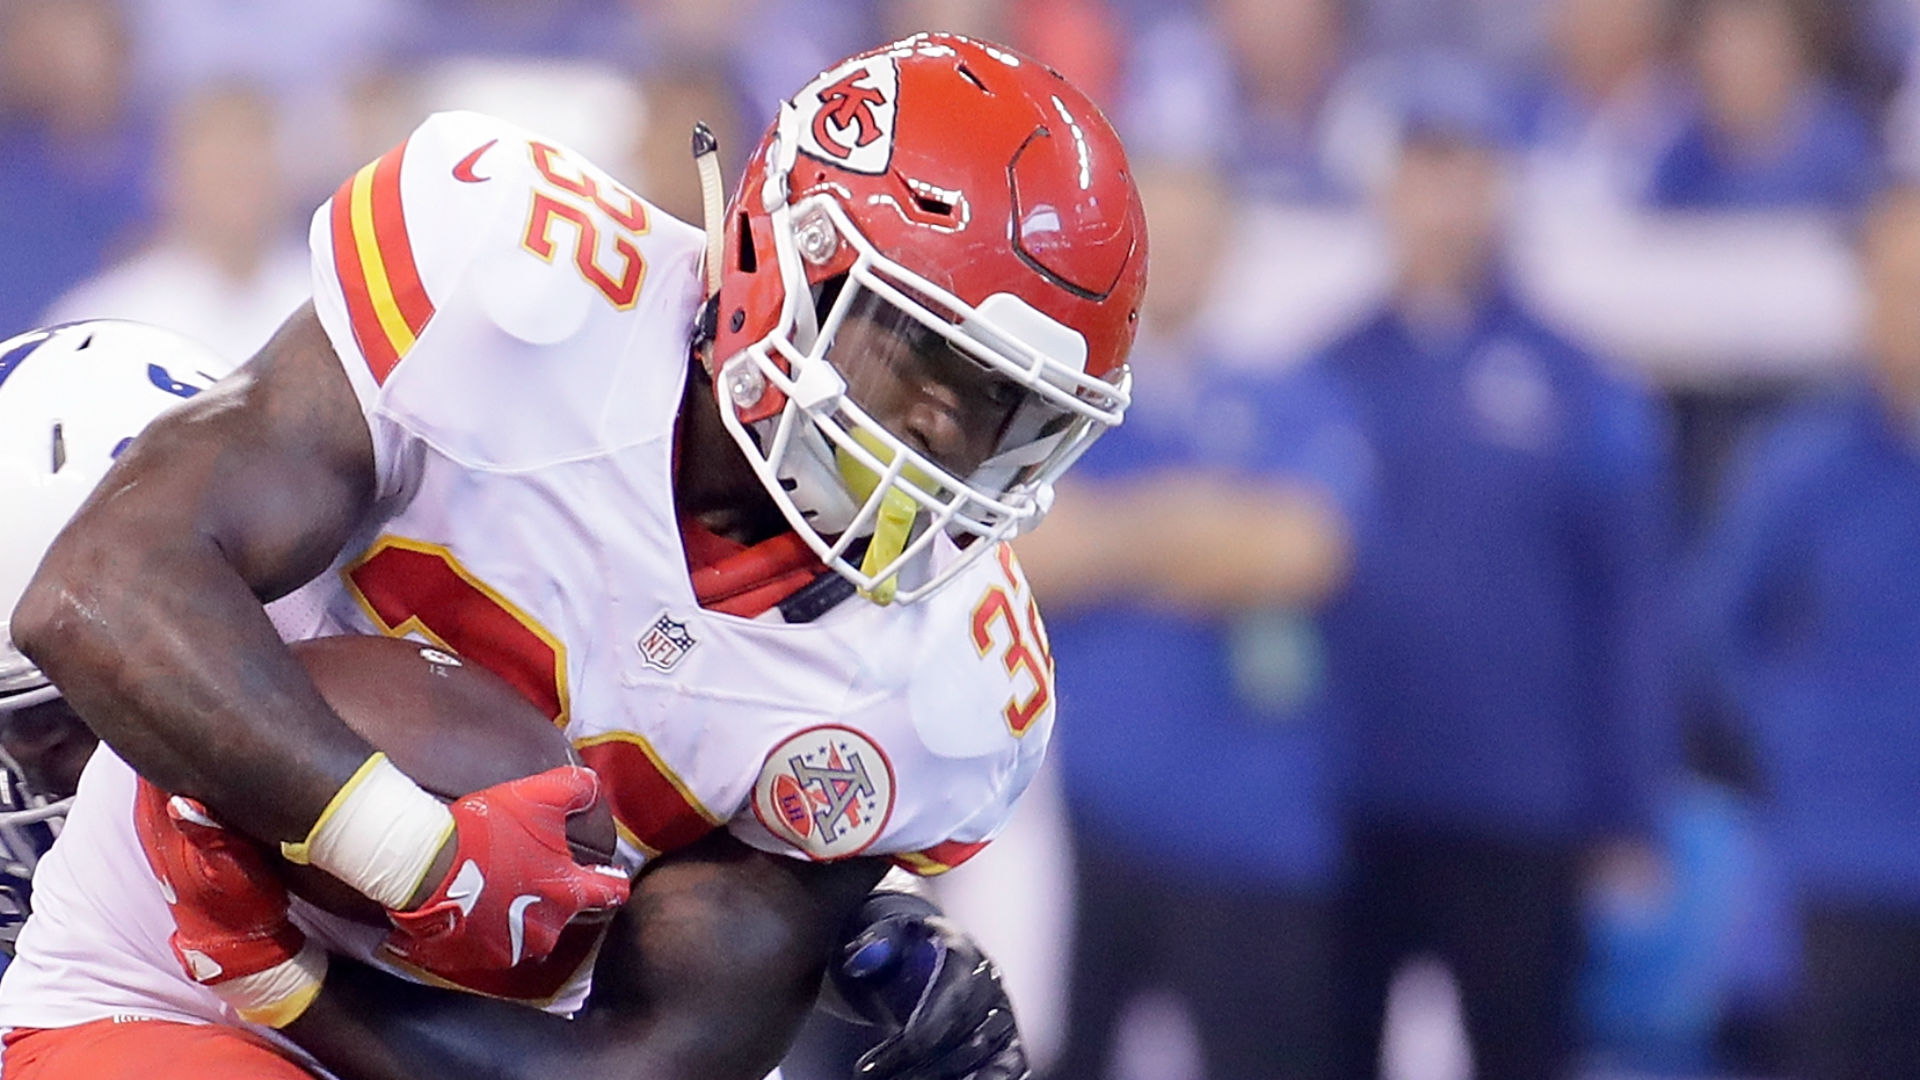 Chiefs' Spencer Ware expected to need season-ending knee surgery